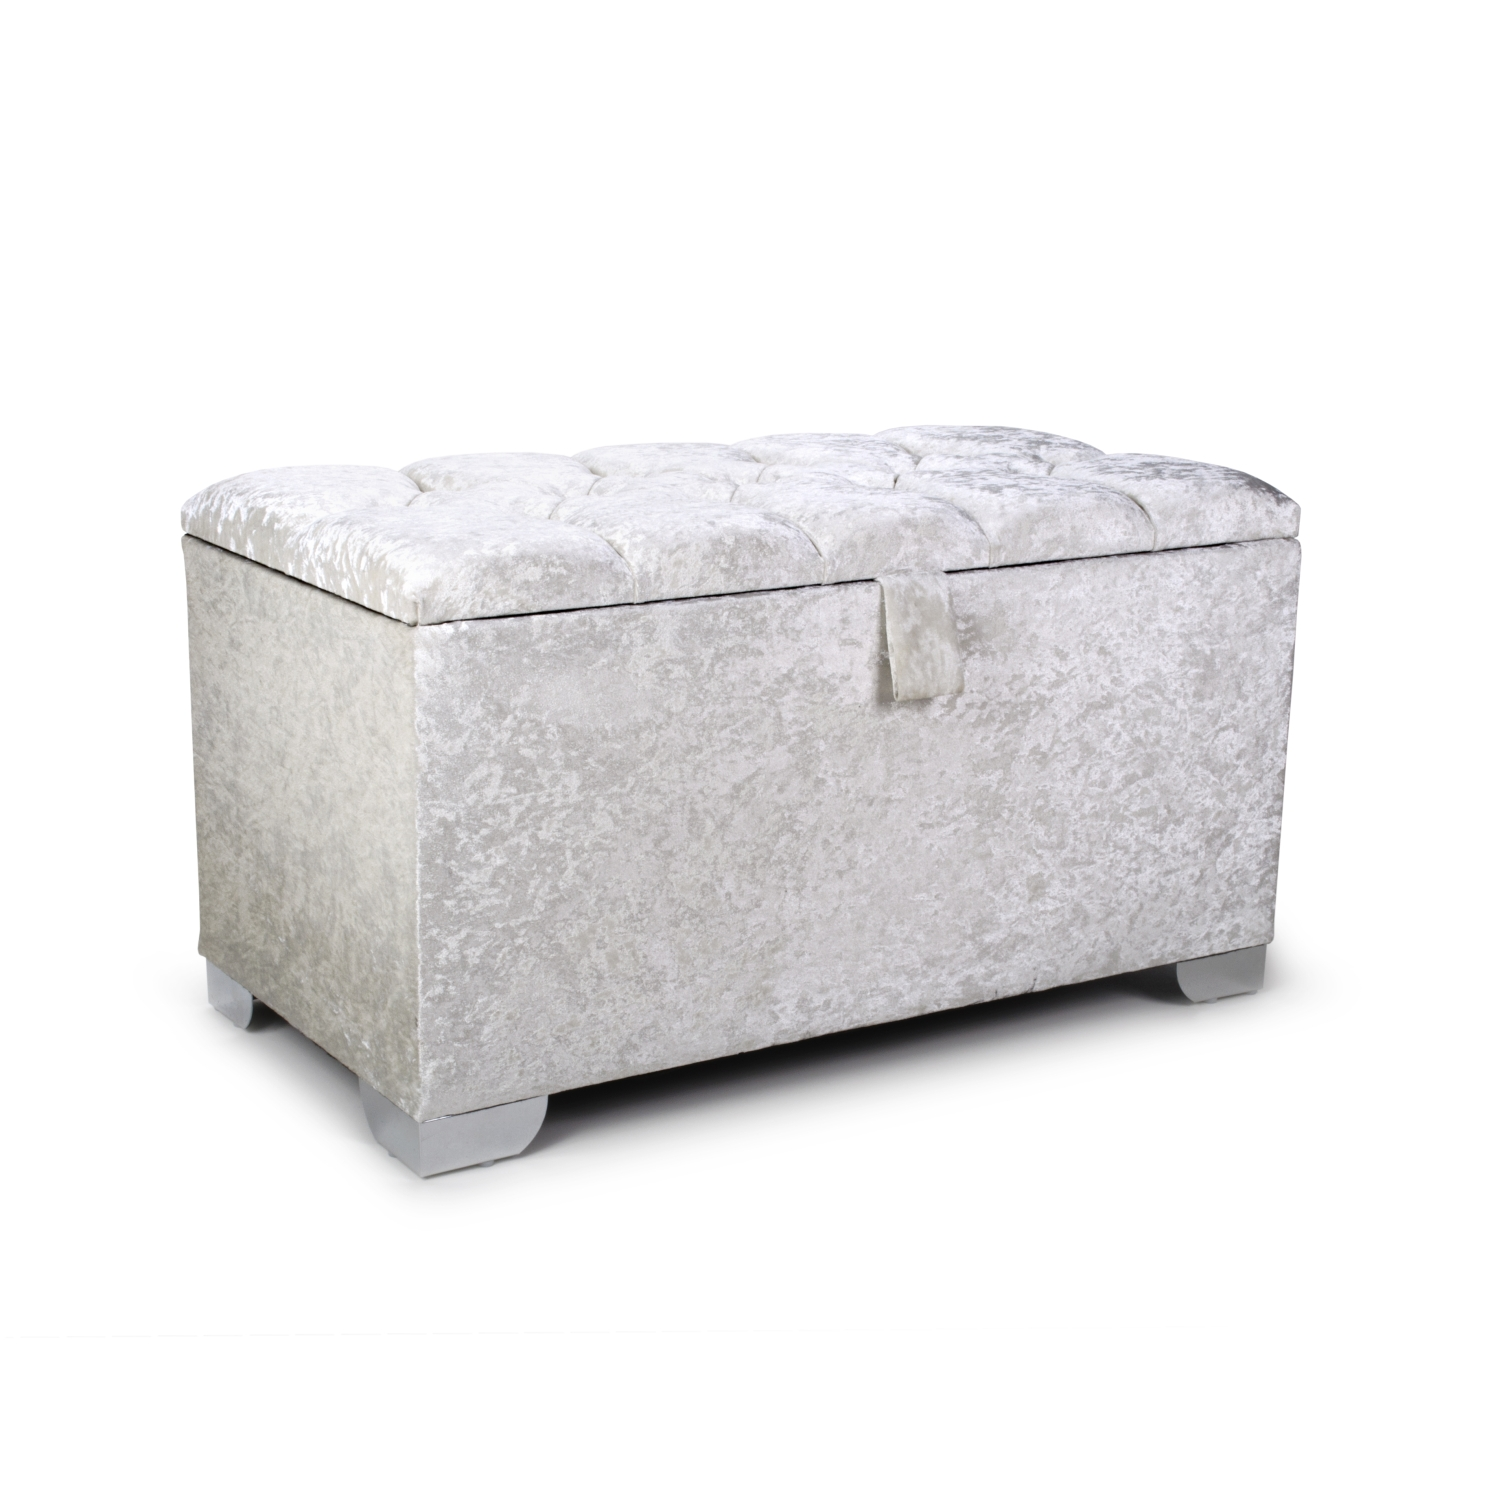 Small 3ft Pearl Crushed Velvet Quilted Crystal Buttoned Ottoman